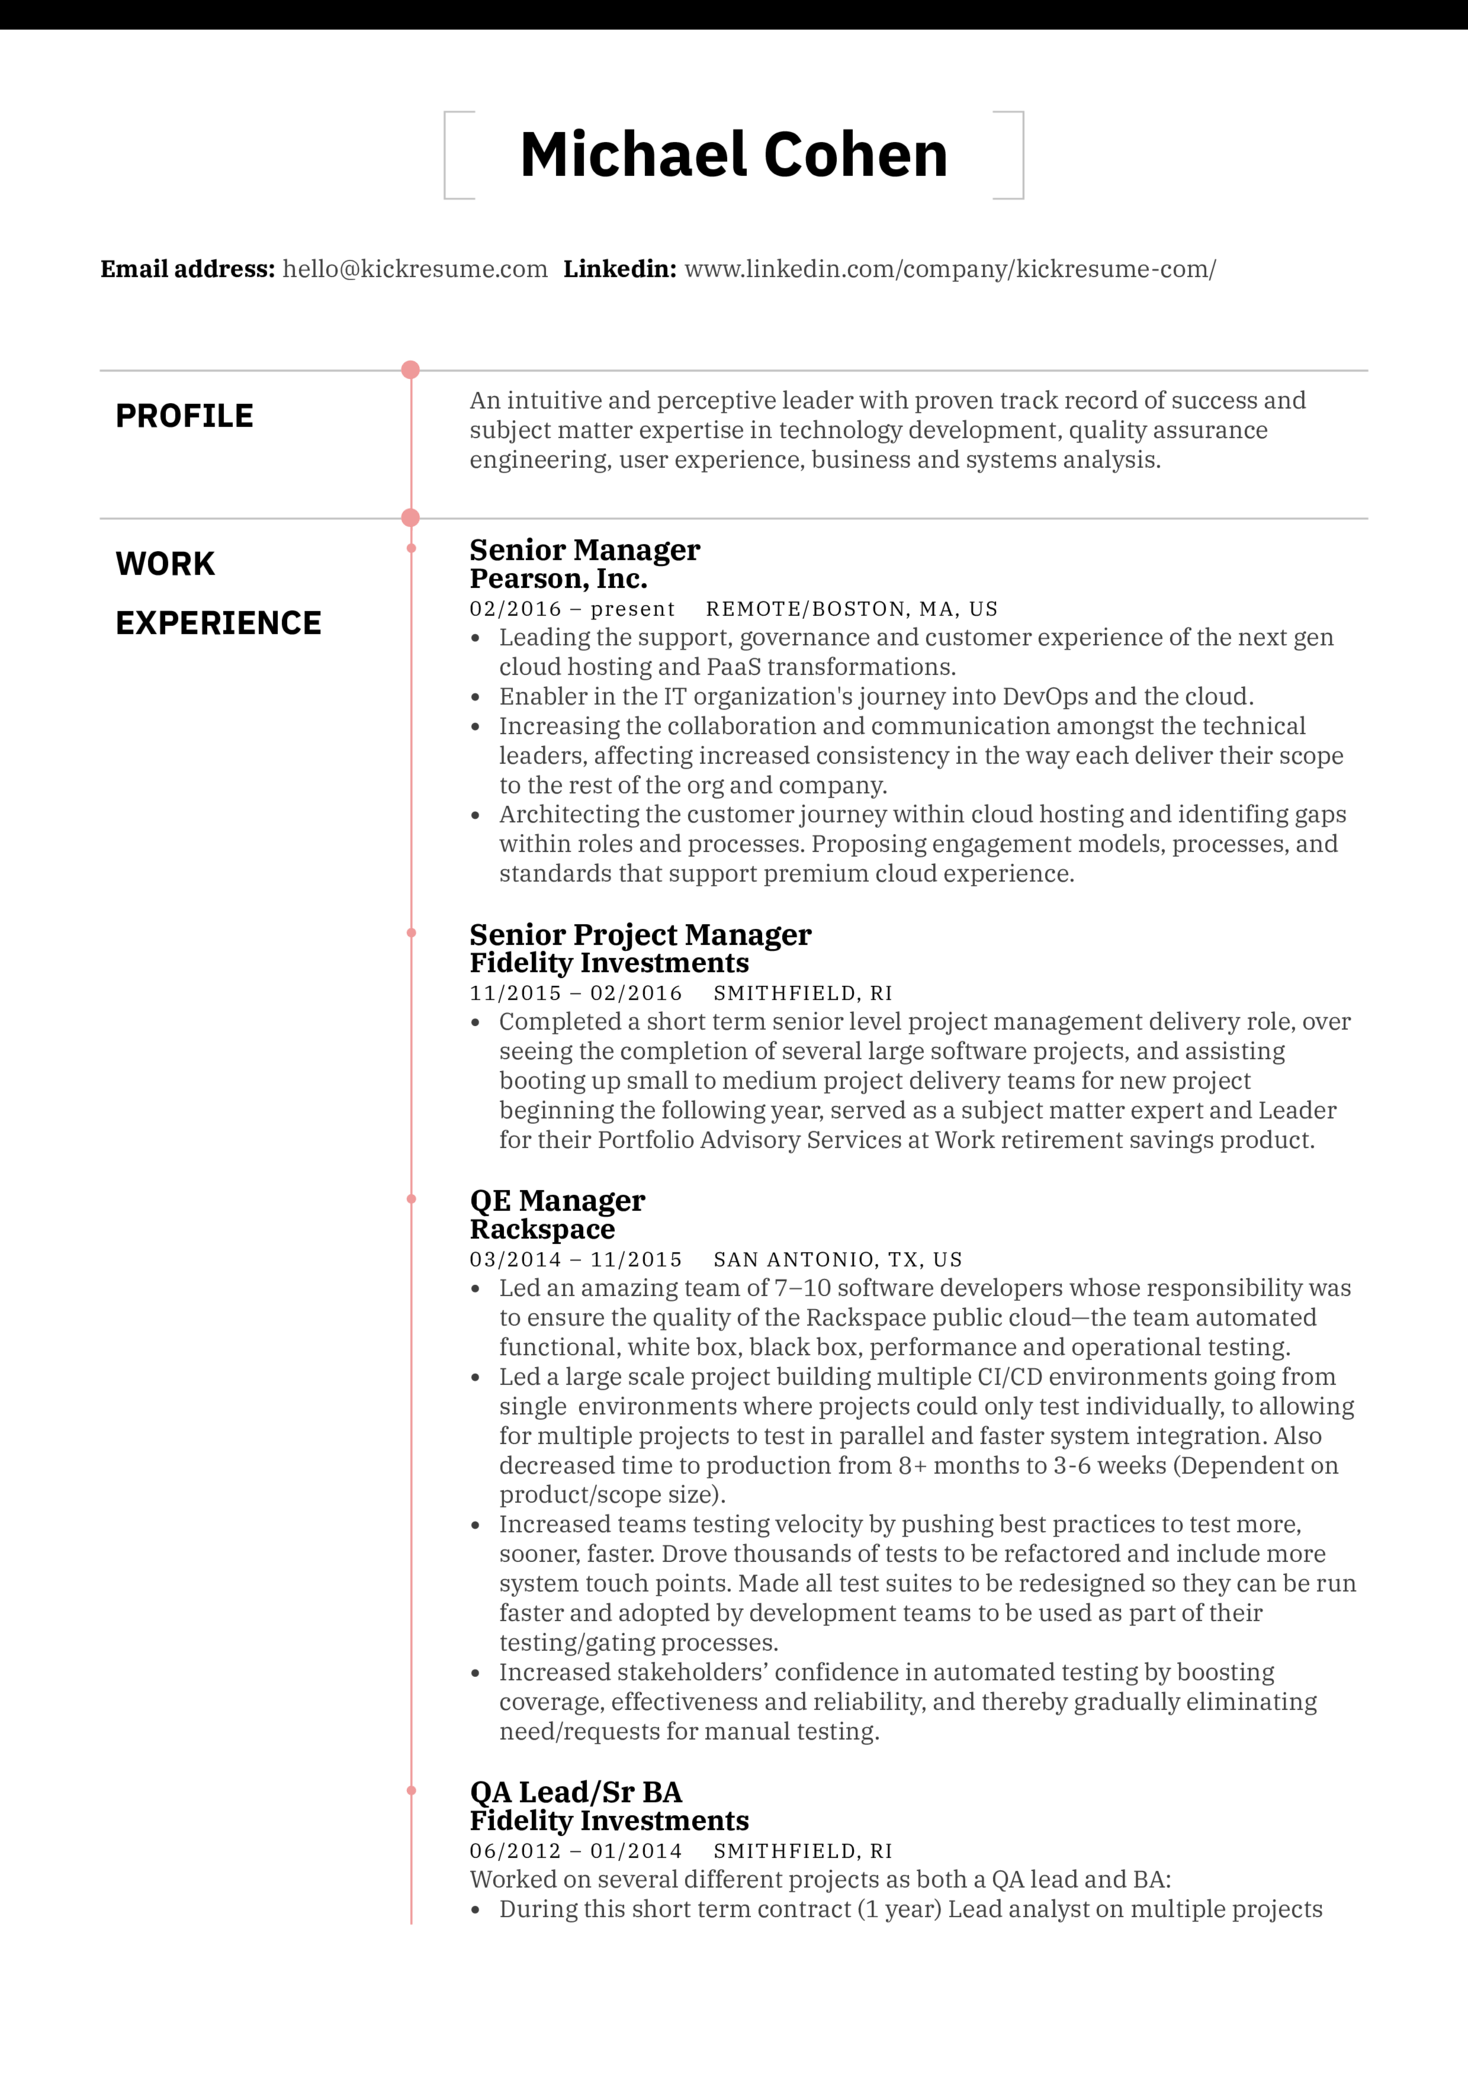 Resume Examples by Real People: Pearson senior project manager ...